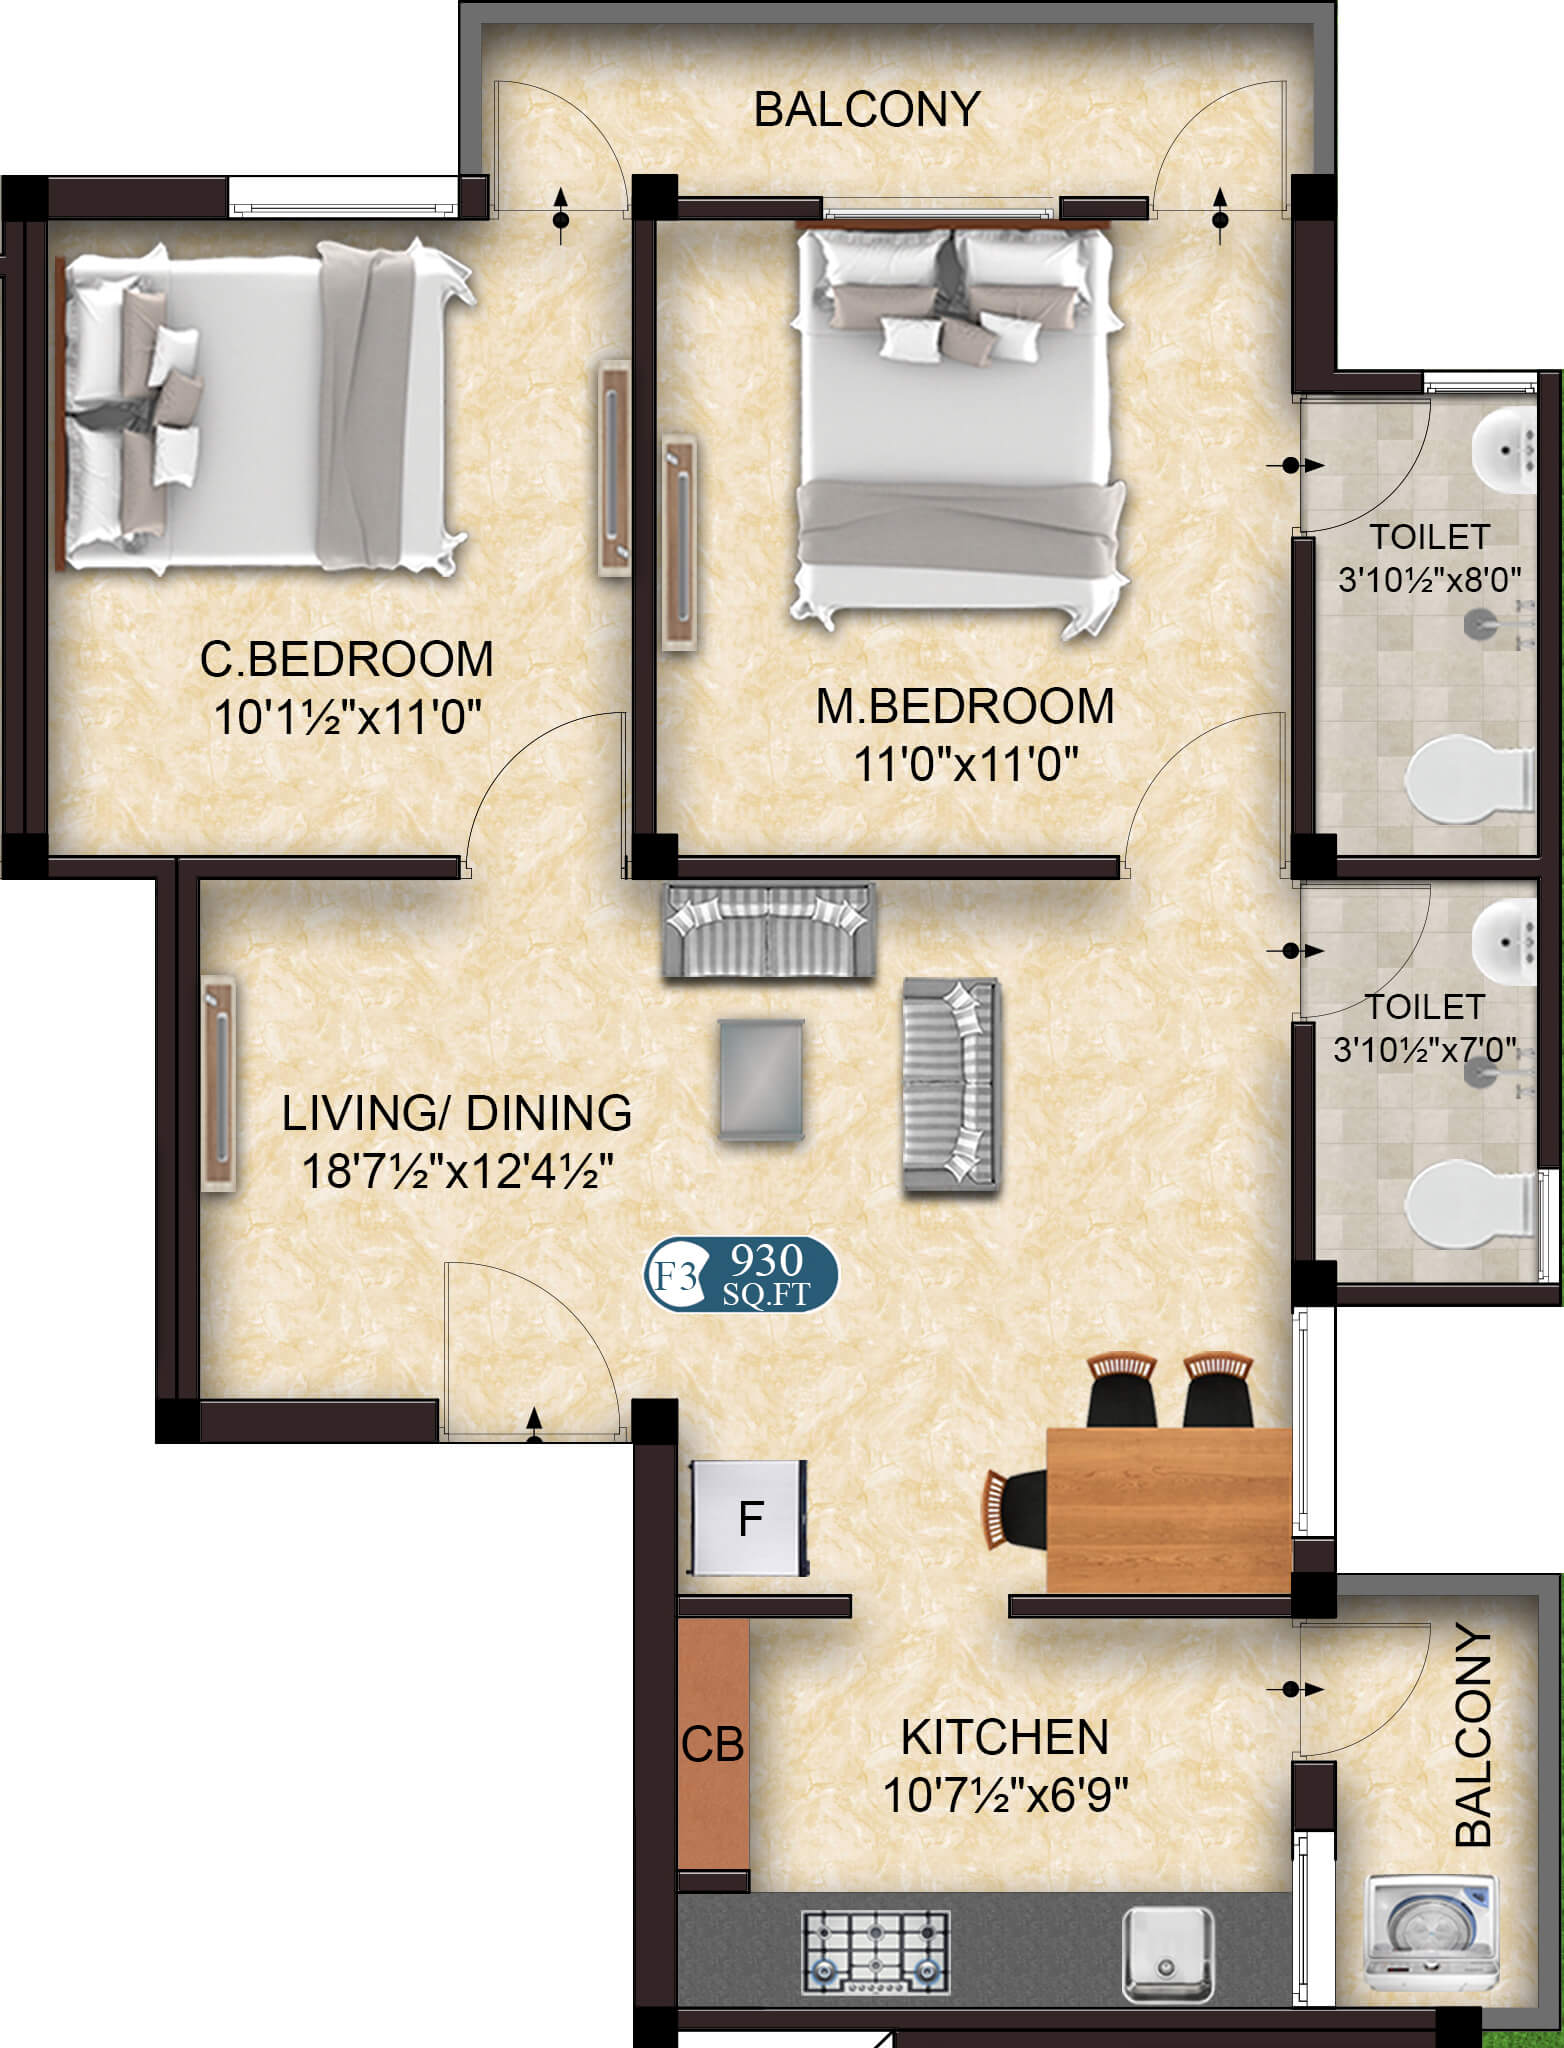 Legend F3 2BHK 930 - Flats for Sale in OMR